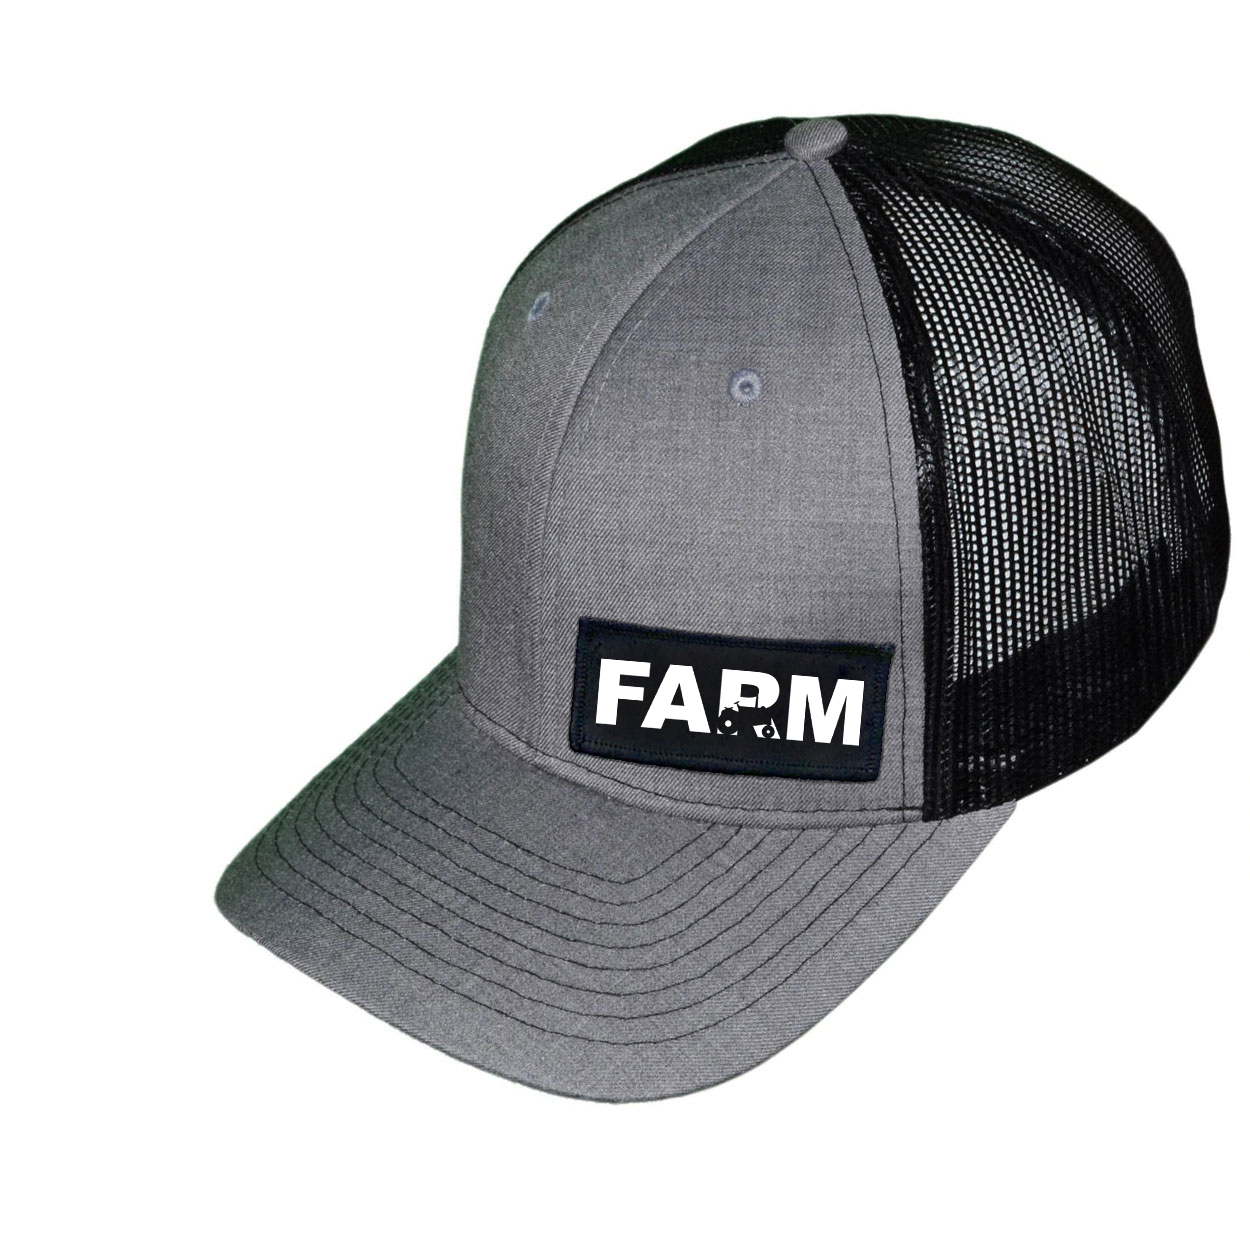 Farm Tractor Logo Night Out Woven Patch Snapback Trucker Hat Heather Gray/Black (White Logo)